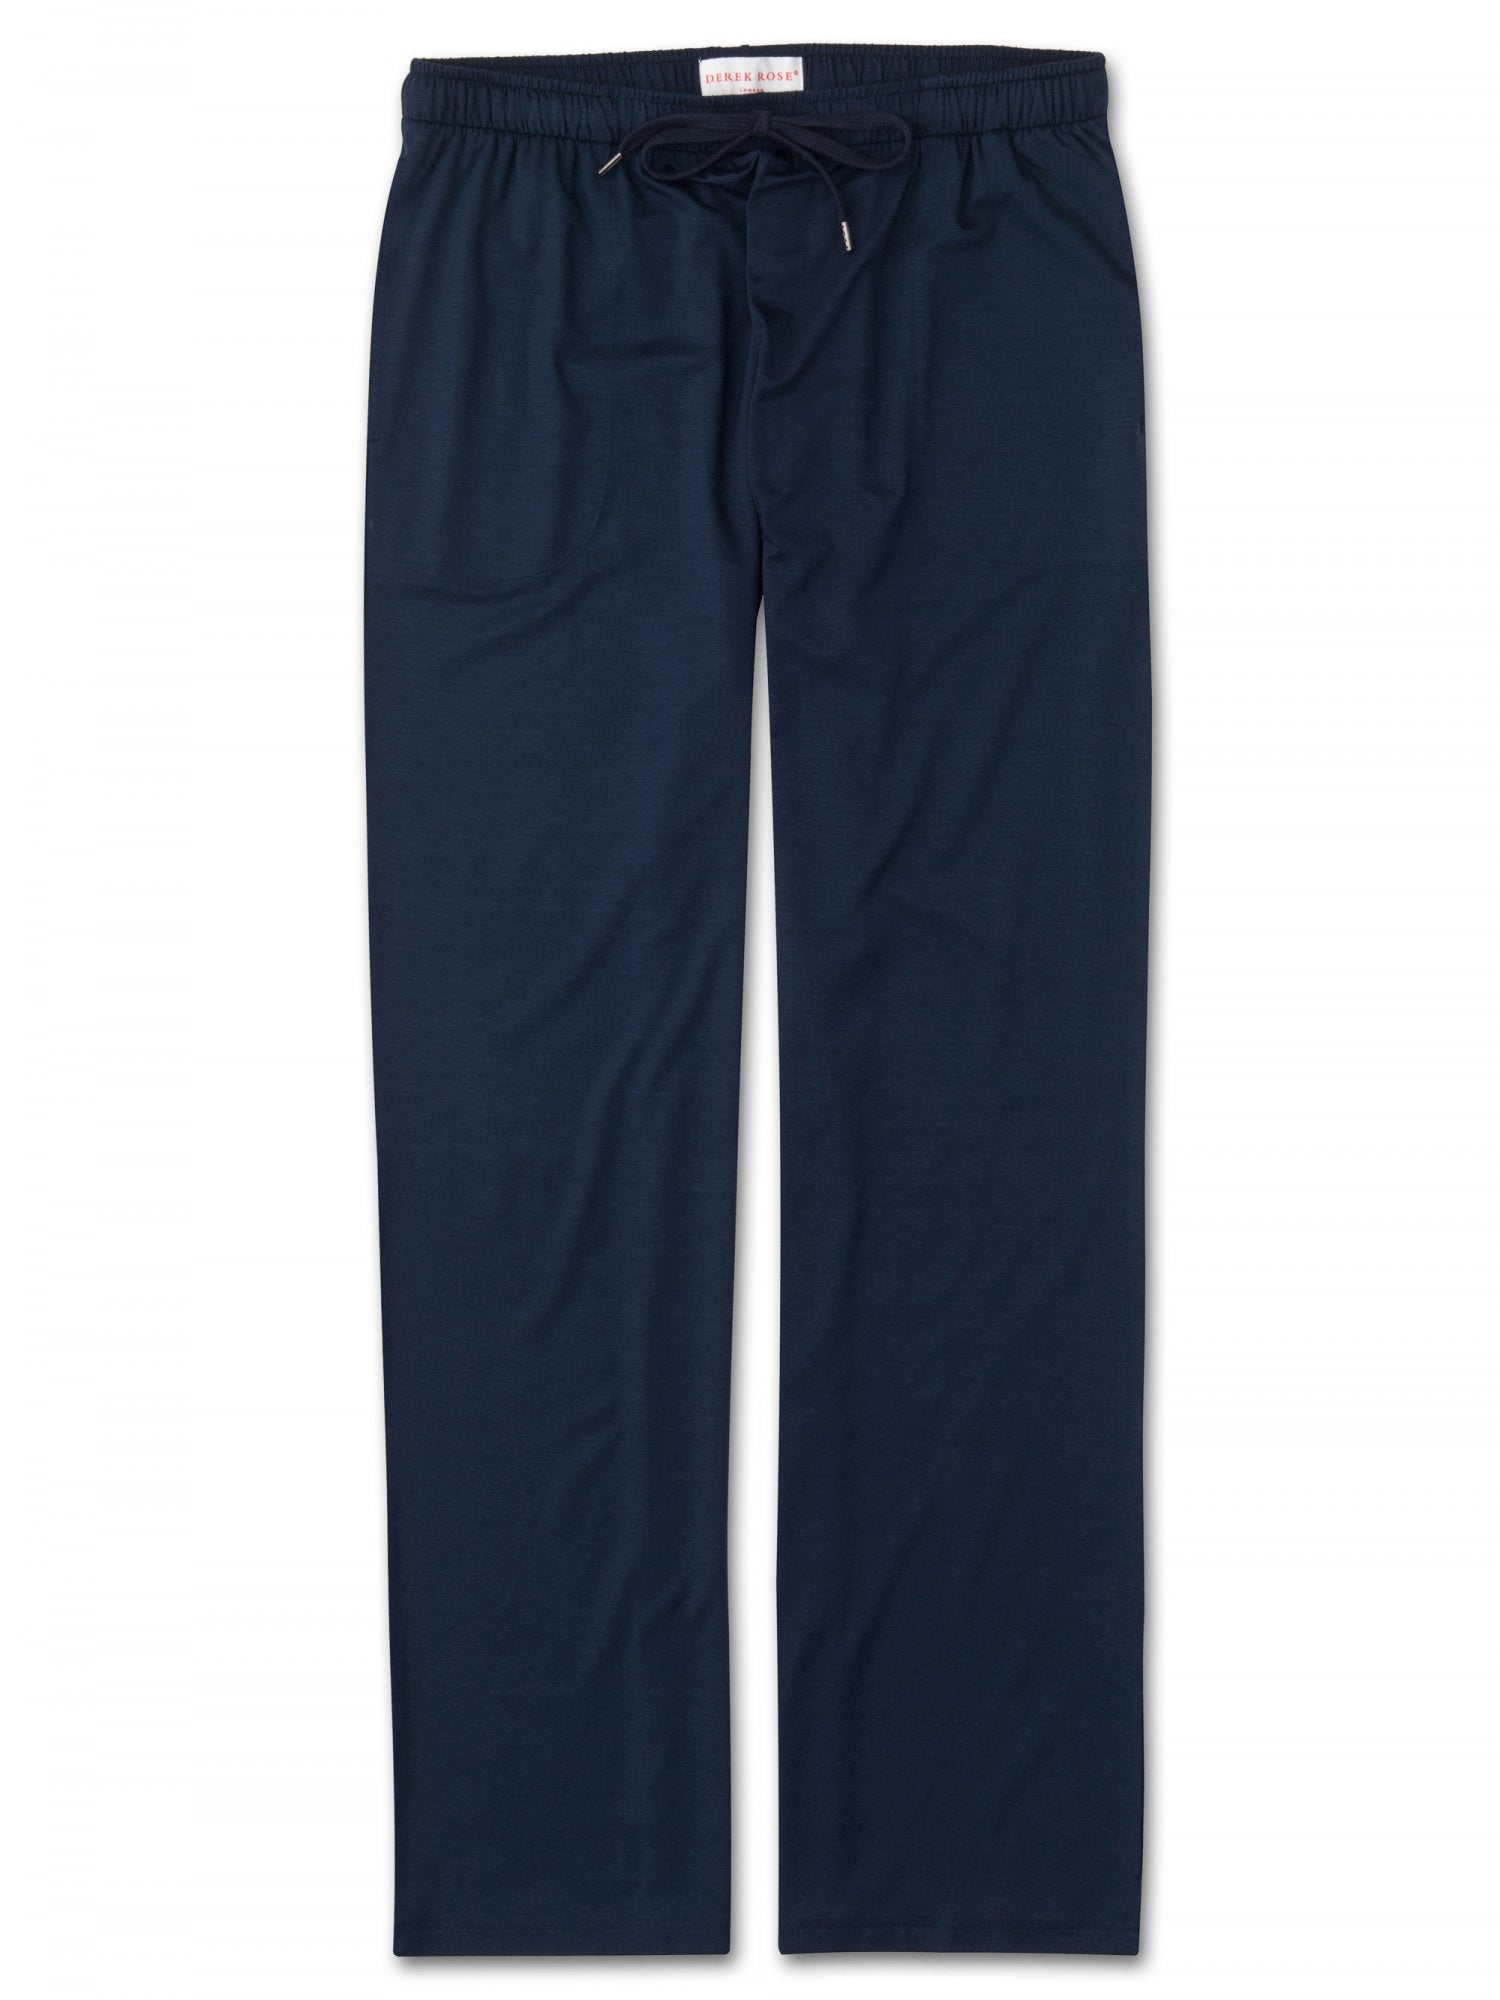 DEREK ROSE BASEL 1 MEN'S TROUSER - NAVY